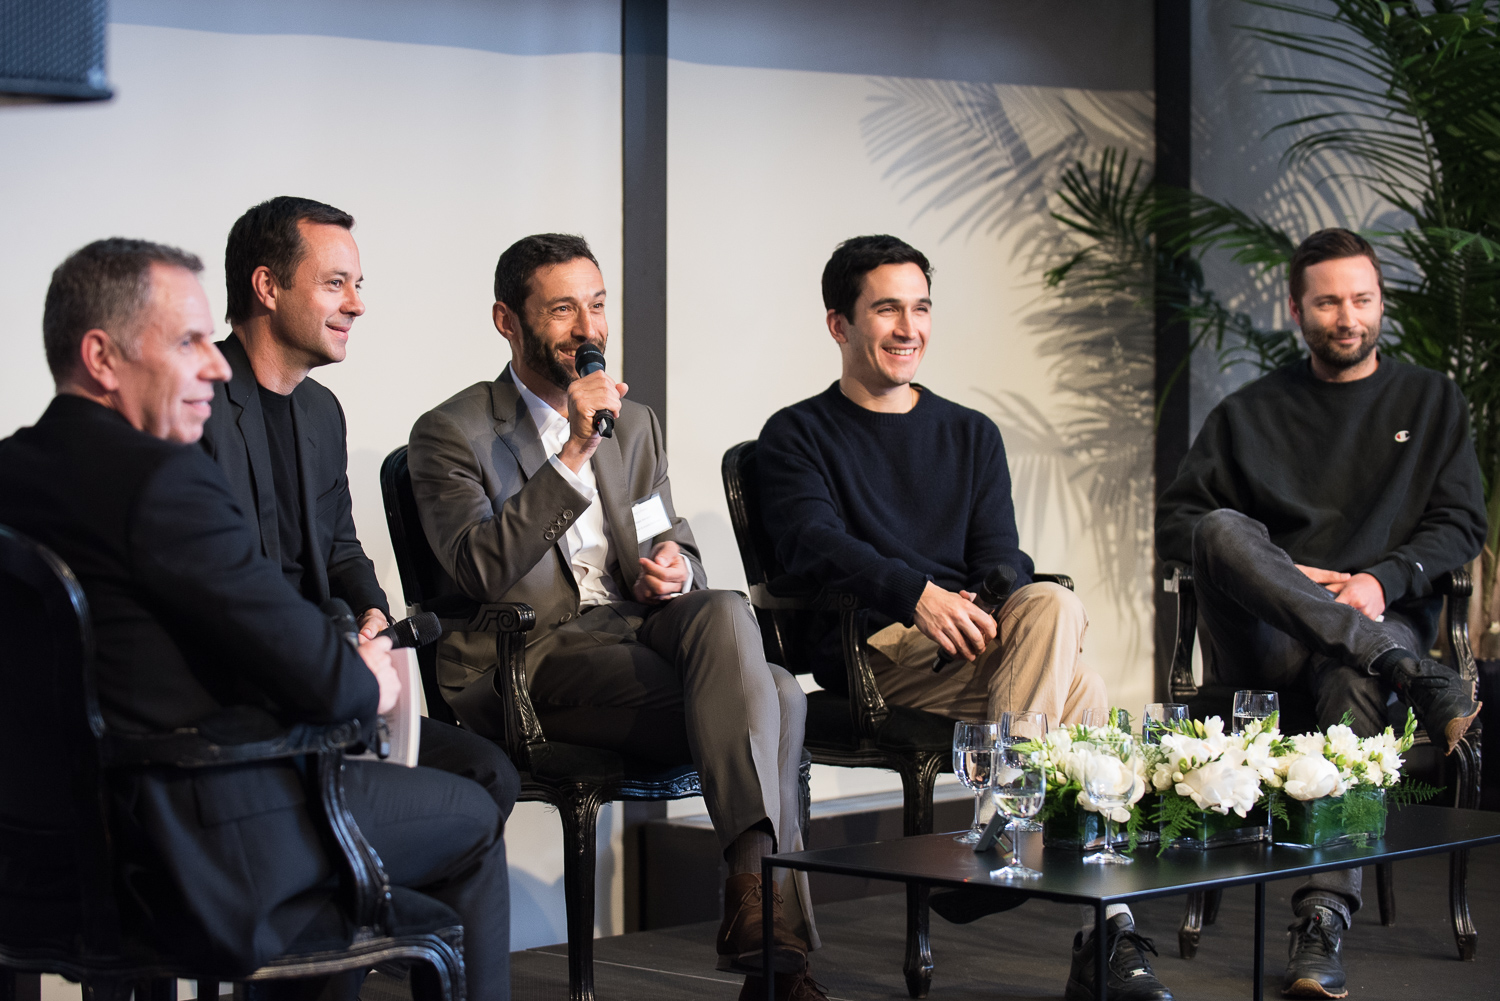 Debating the meaning of luxury. From left to right: Miles Socha, editor-in-chief of WWD; Laurent Claquin, head of Kering Americas; Alain Bernard, CEO of Van Cleef & Arpels Americas; and Lazaro Hernandez and Jack McCollough, cofounders of Proenza Schouler.